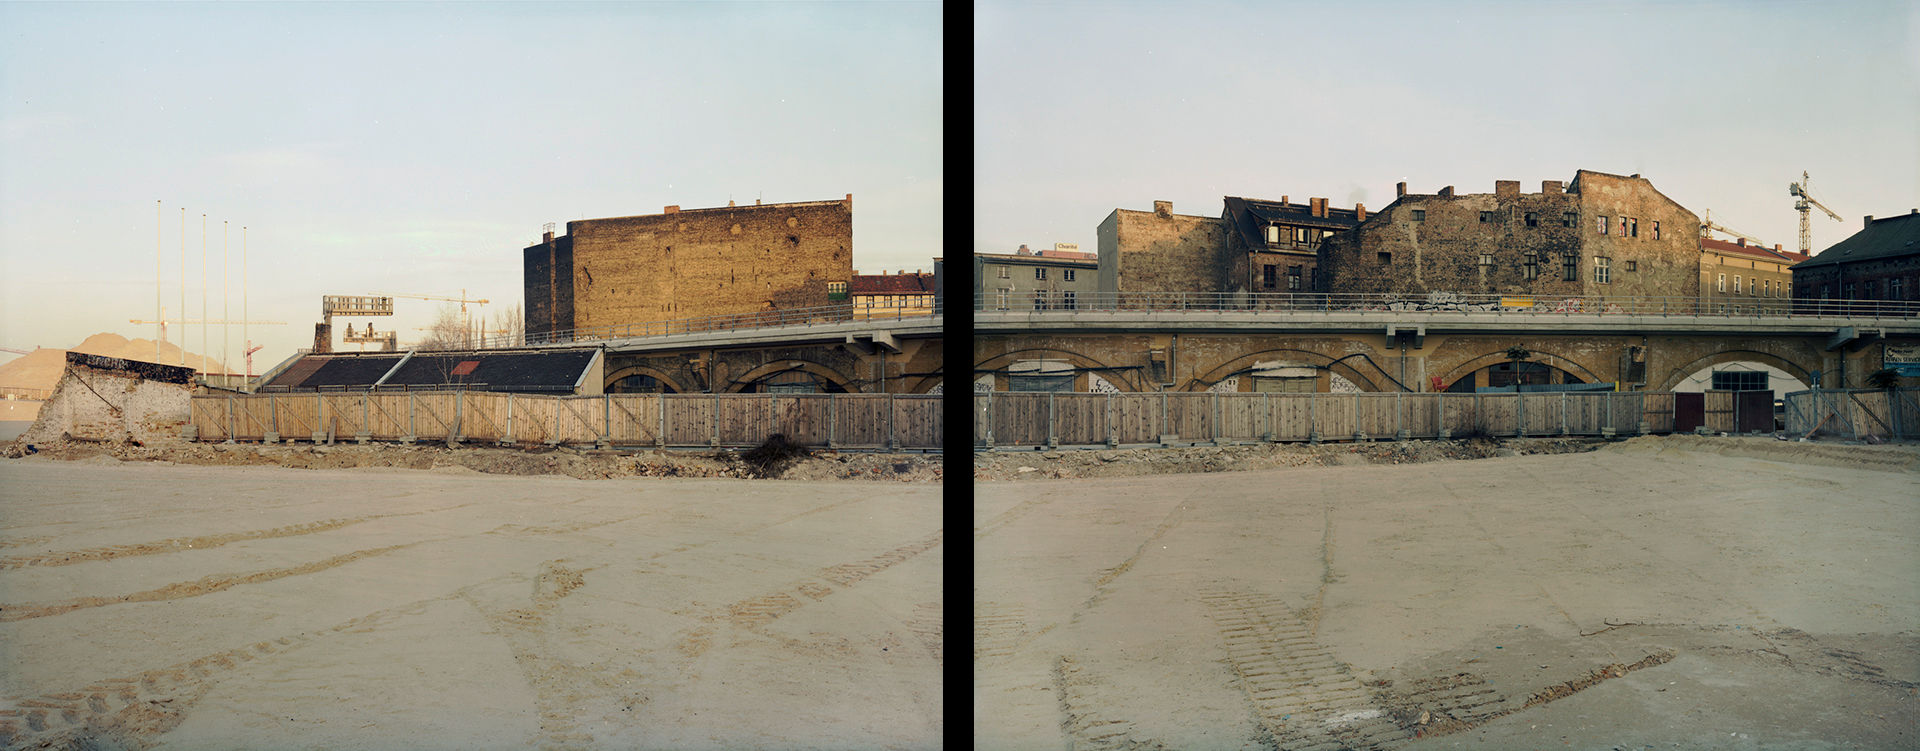 New Government Quarters diptych